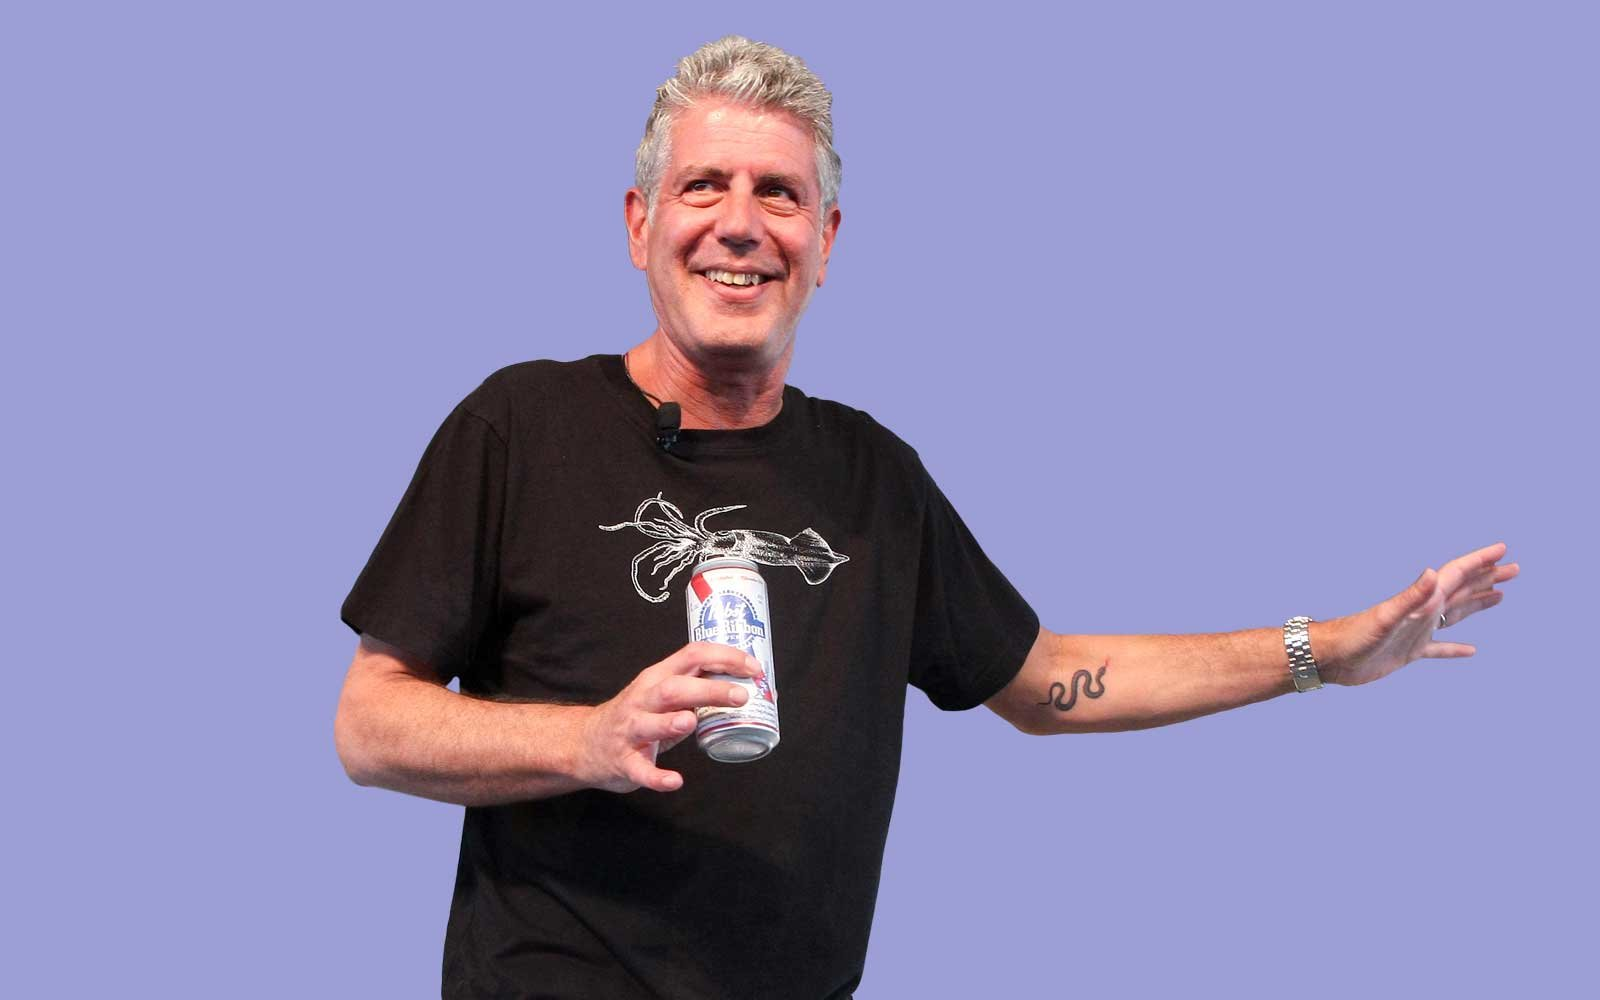 Anthony Bourdain on Craft Beer